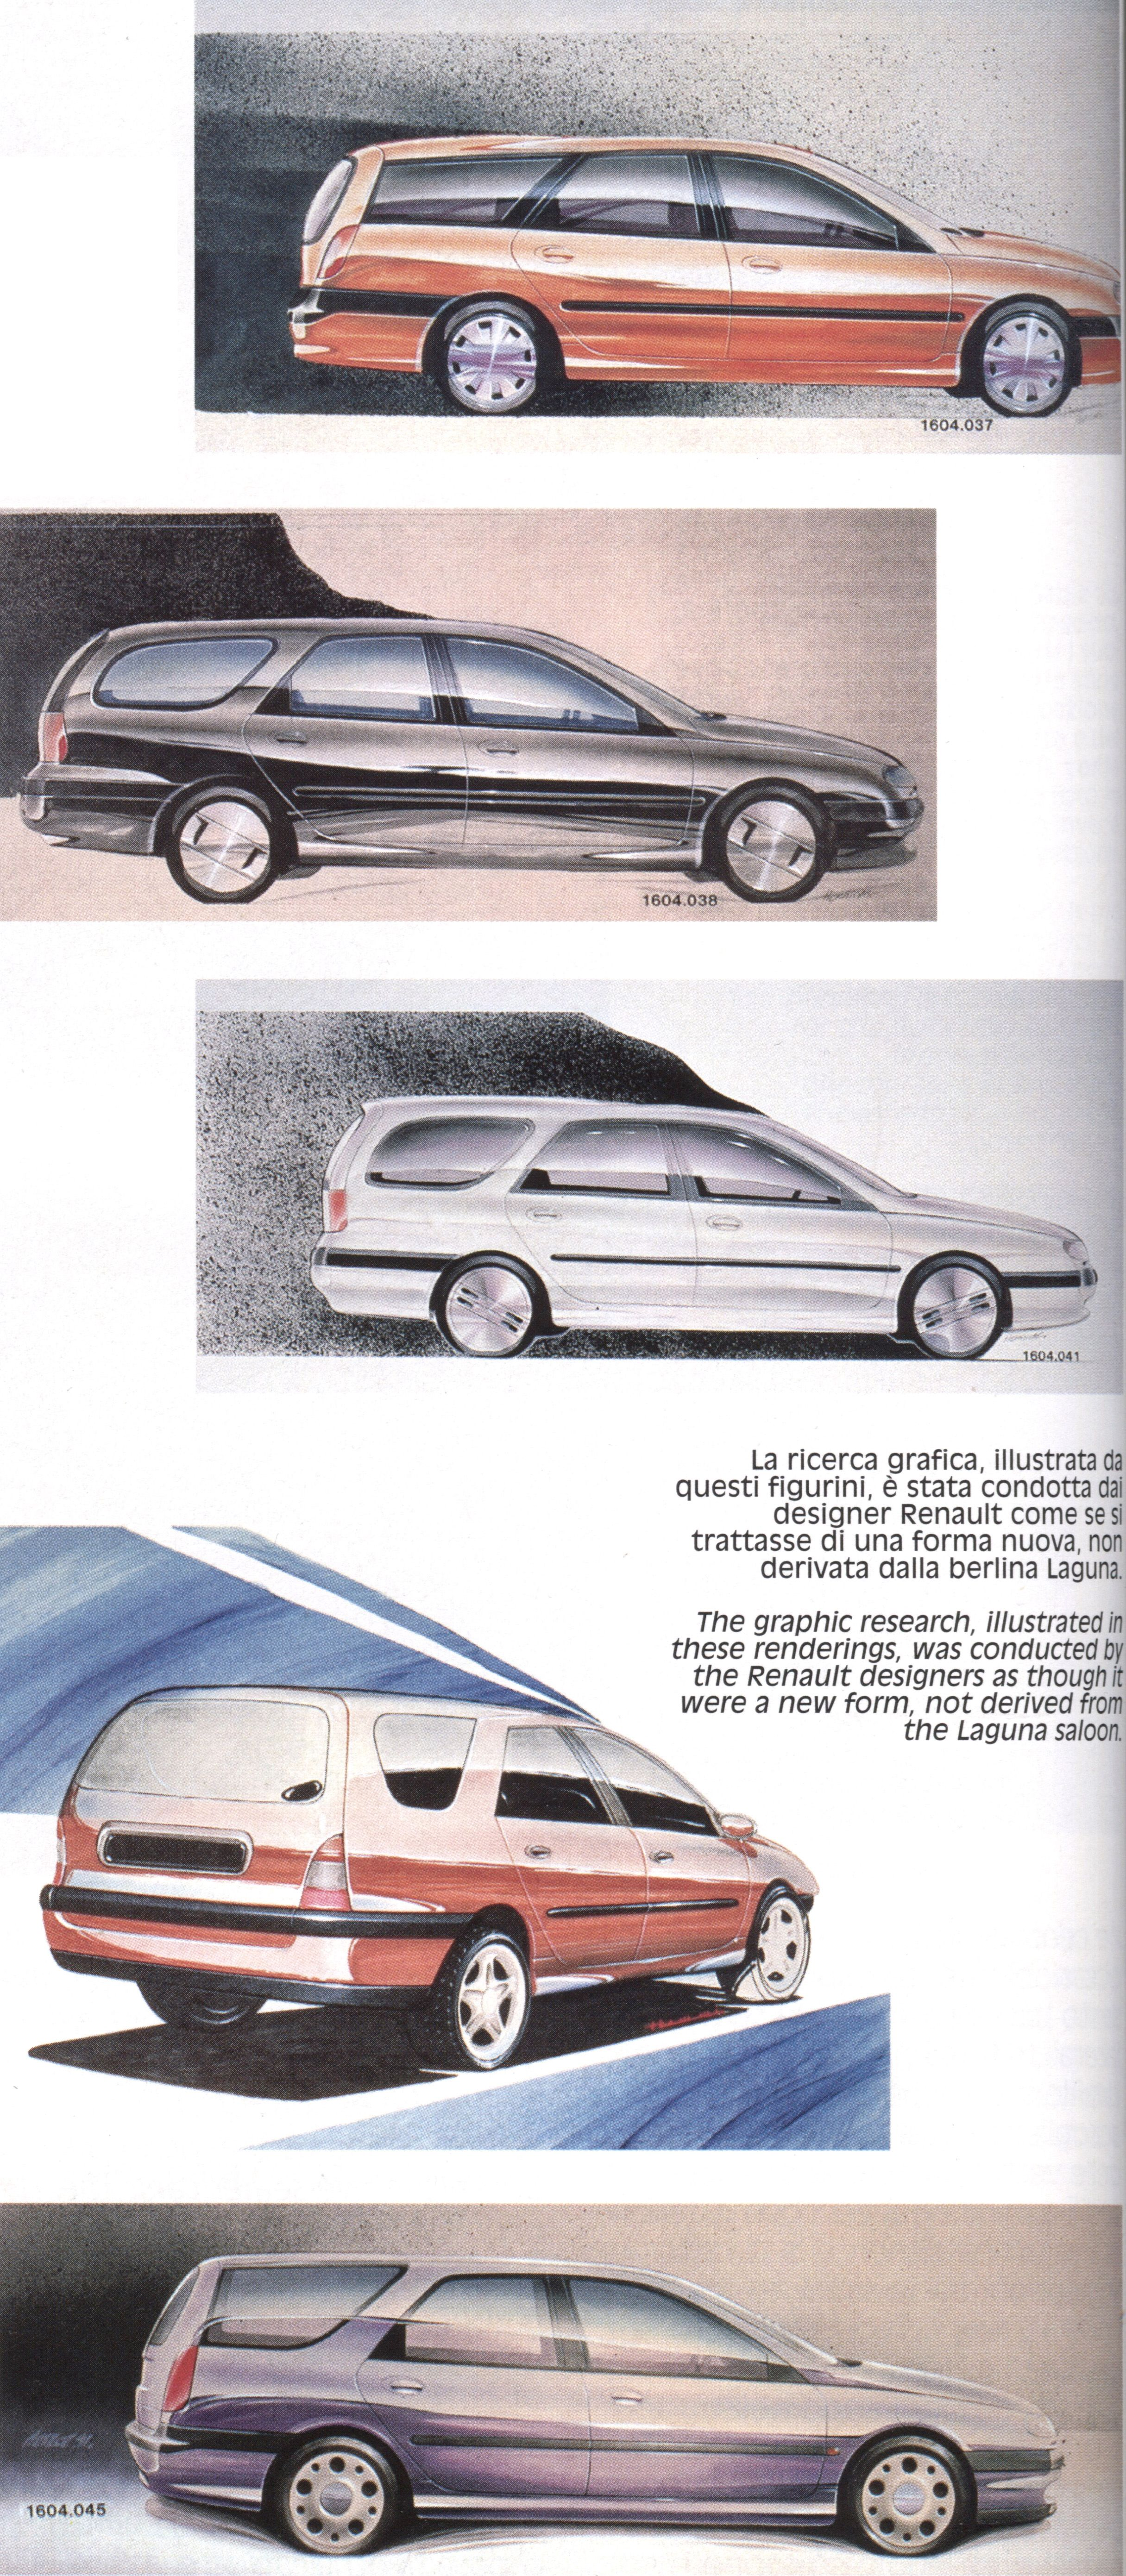 Og 1994 Renault Laguna Nevada Mk1 Design Sketches Carros